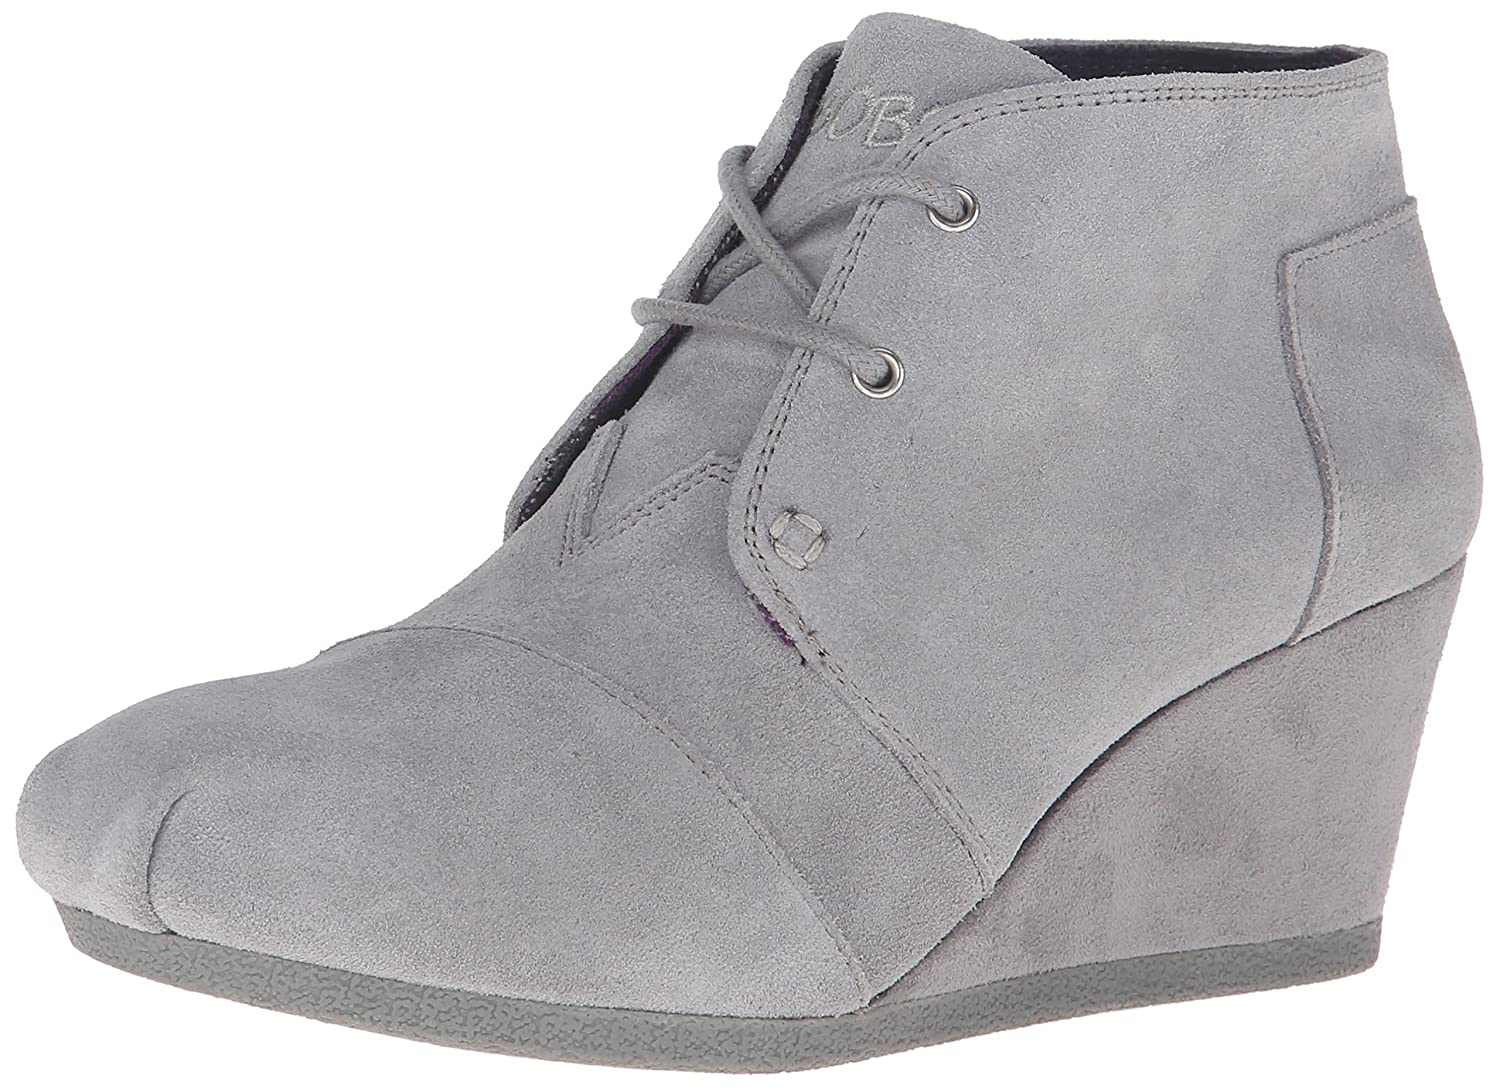 Skechers BOBS from Women's High Notes Wedge Boot B018BIRVHC 10 B(M) US|Gray